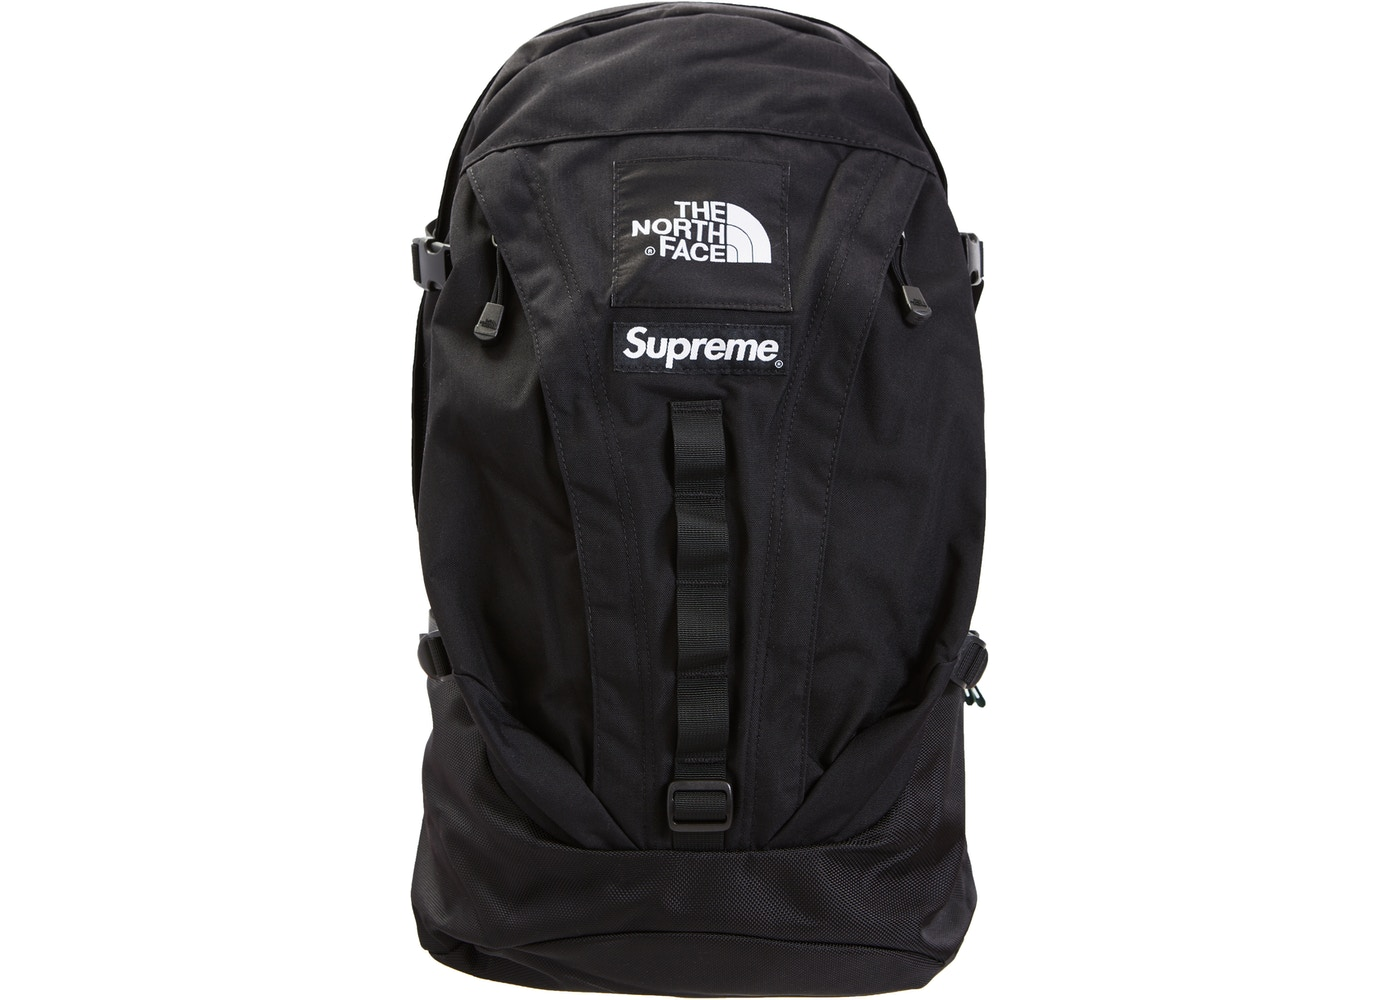 Supreme The North Face Expedition Backpack Black - FW18 628333224